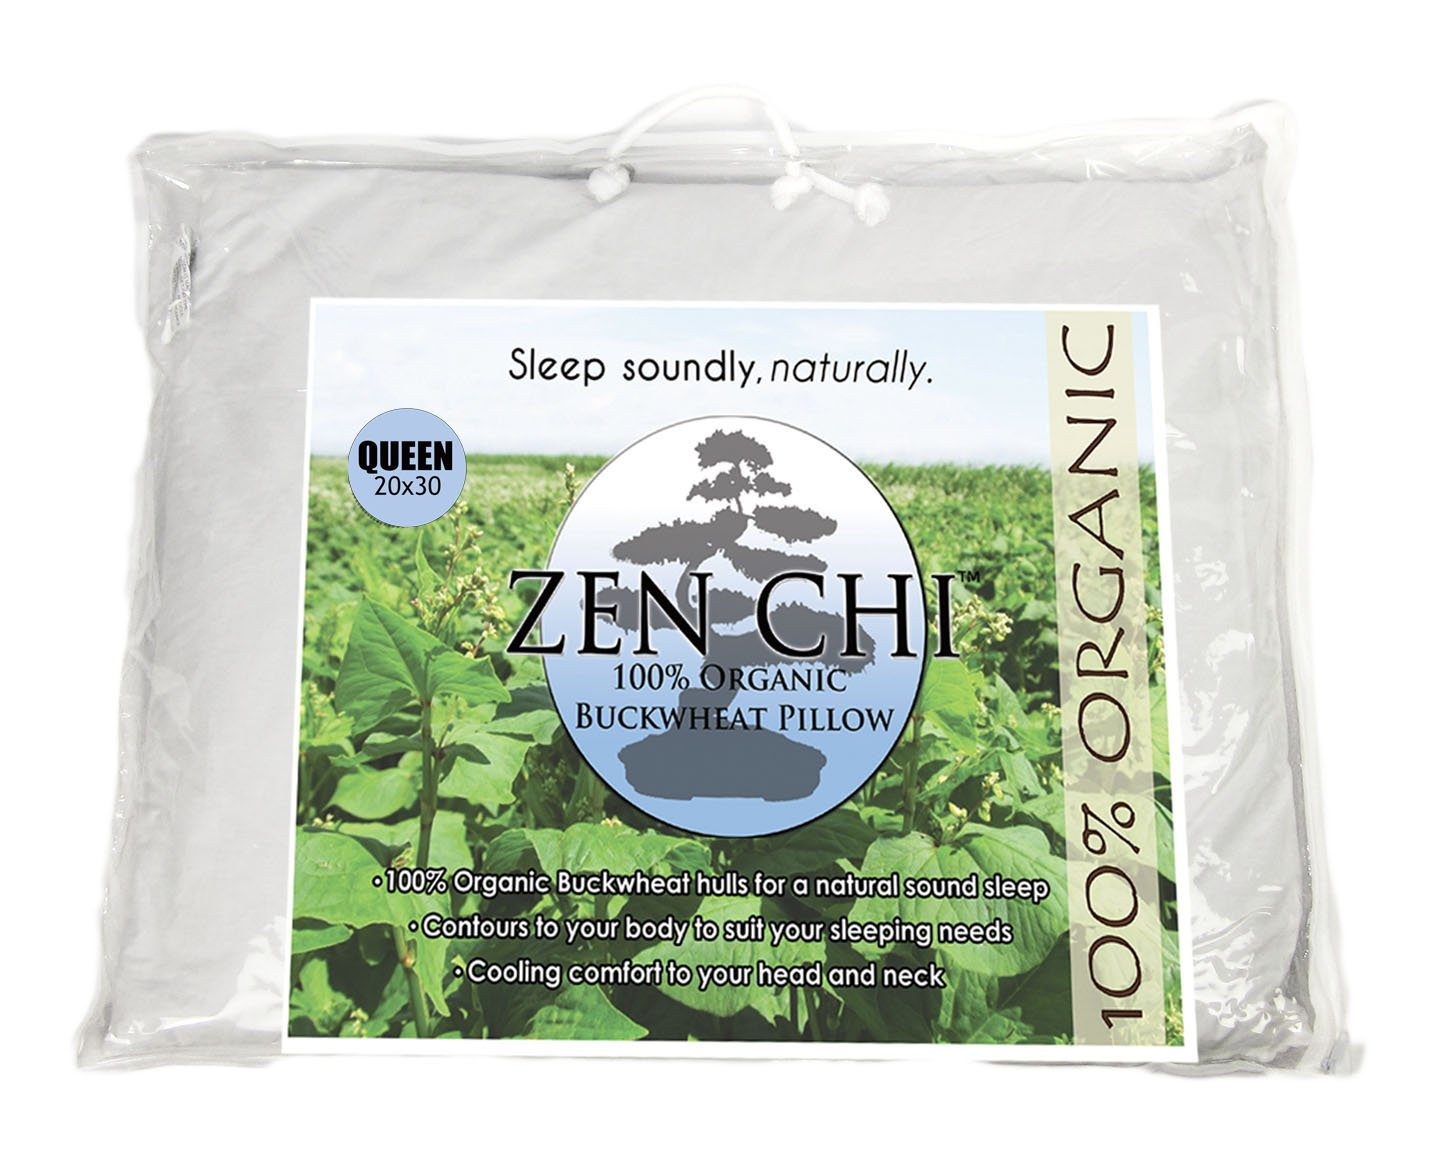 zen chi buckwheat pillow